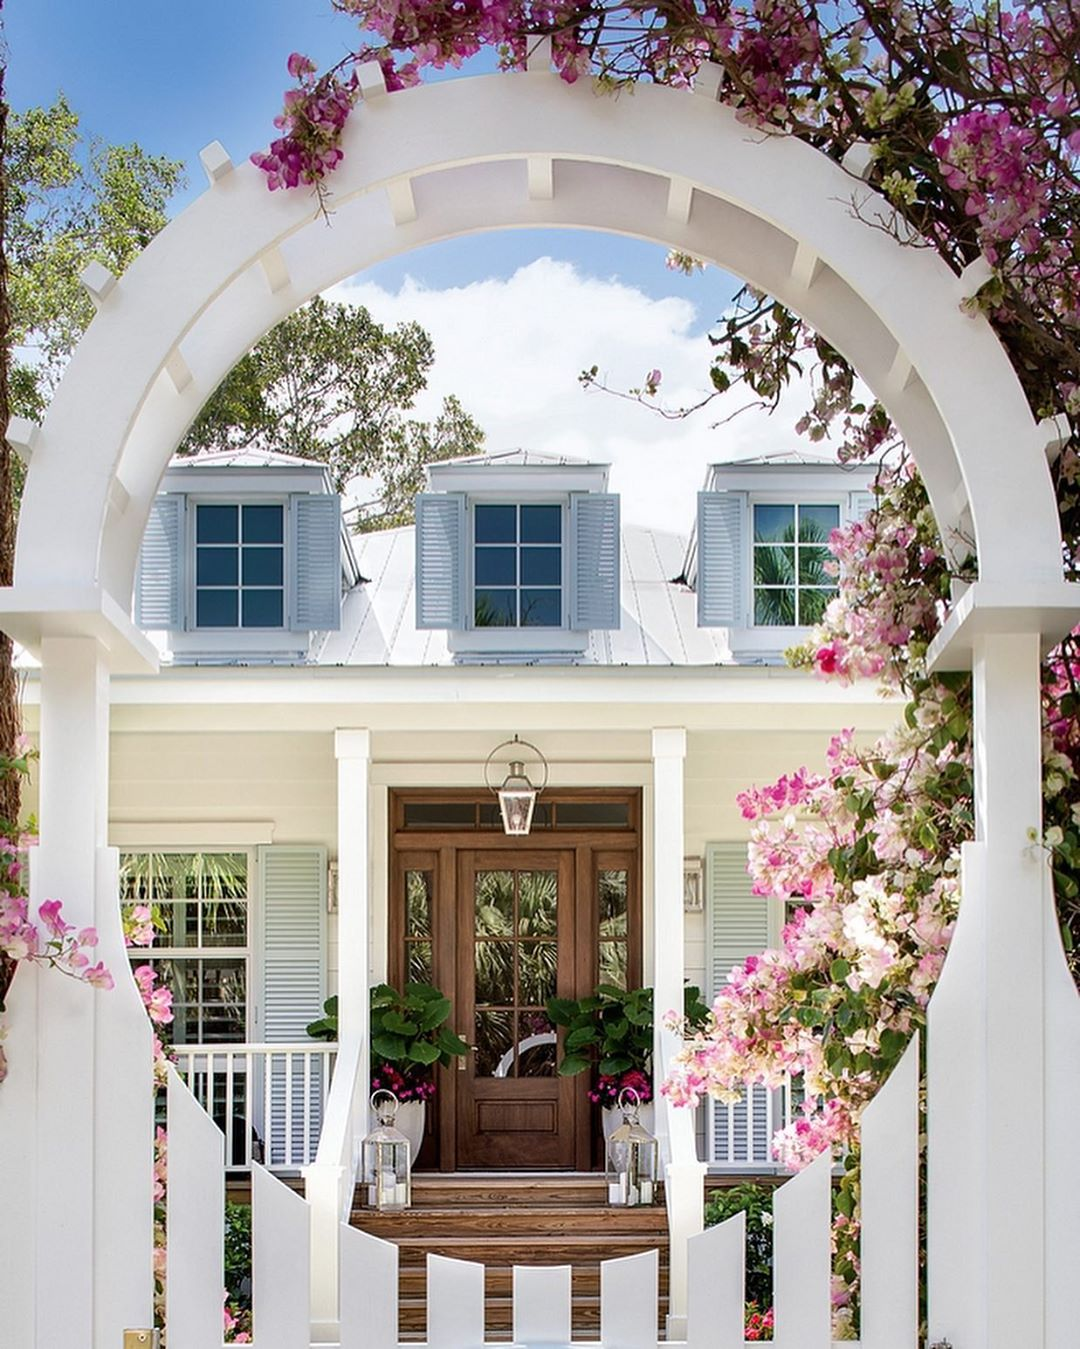 Breathtaking lovely curb appeal with amaazing floral covered arbor and blue shutters - Pineapples Design Group. Charming inspiration if you love white painted house exteriors! #whitehouses #housedesign #exteriors #curbappeal #shutters #arbor